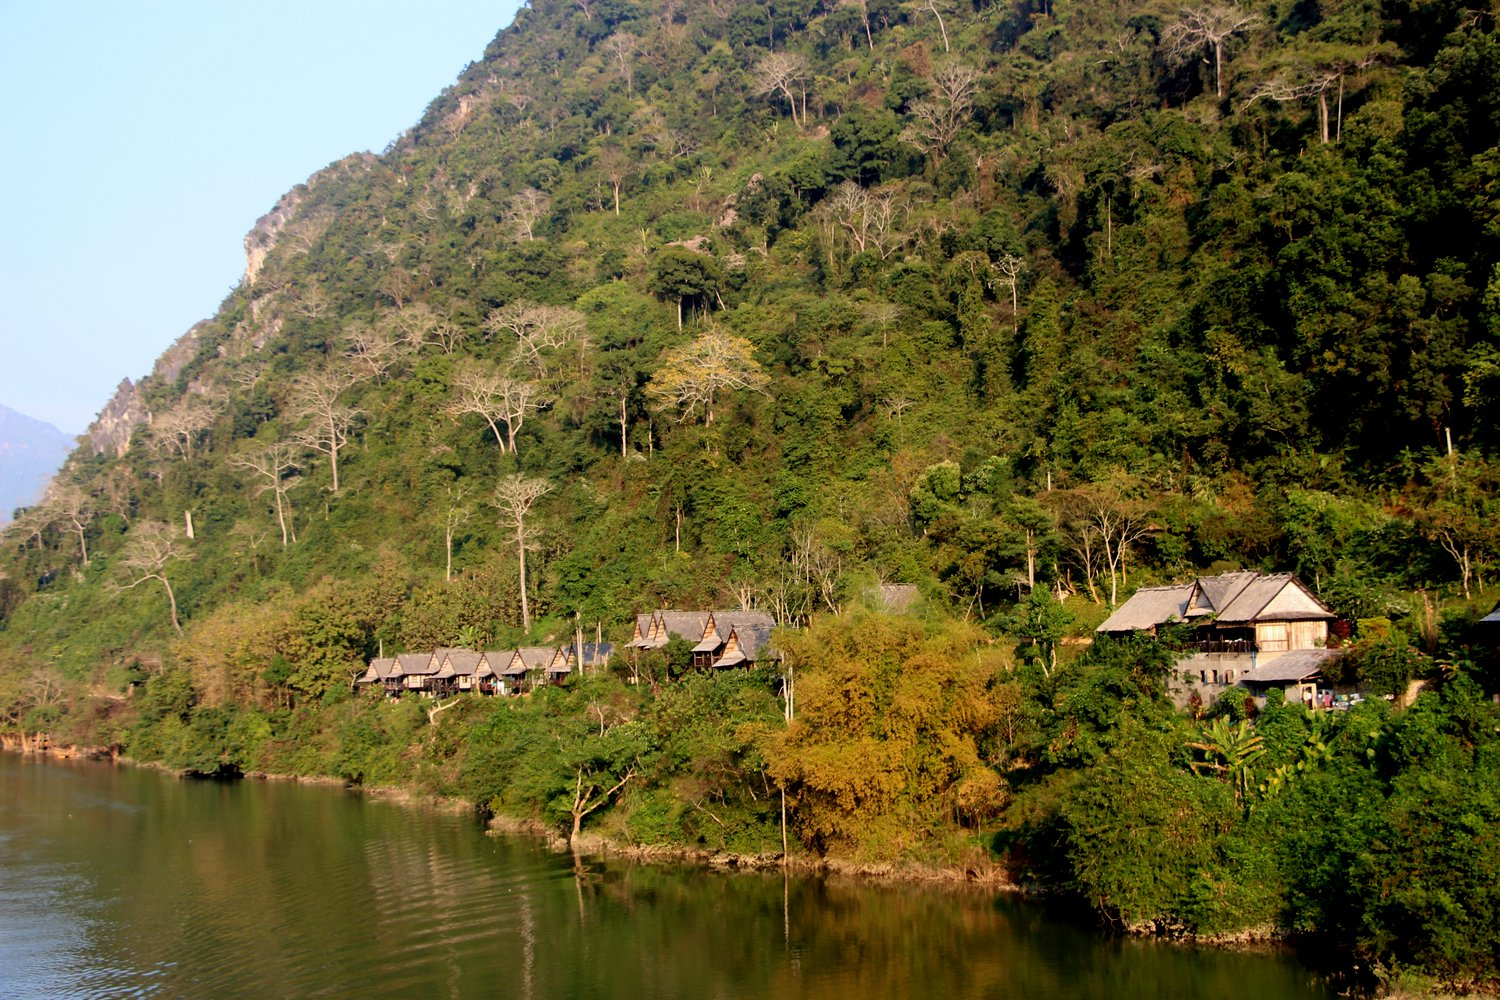 Nong Khiaw River Cottages